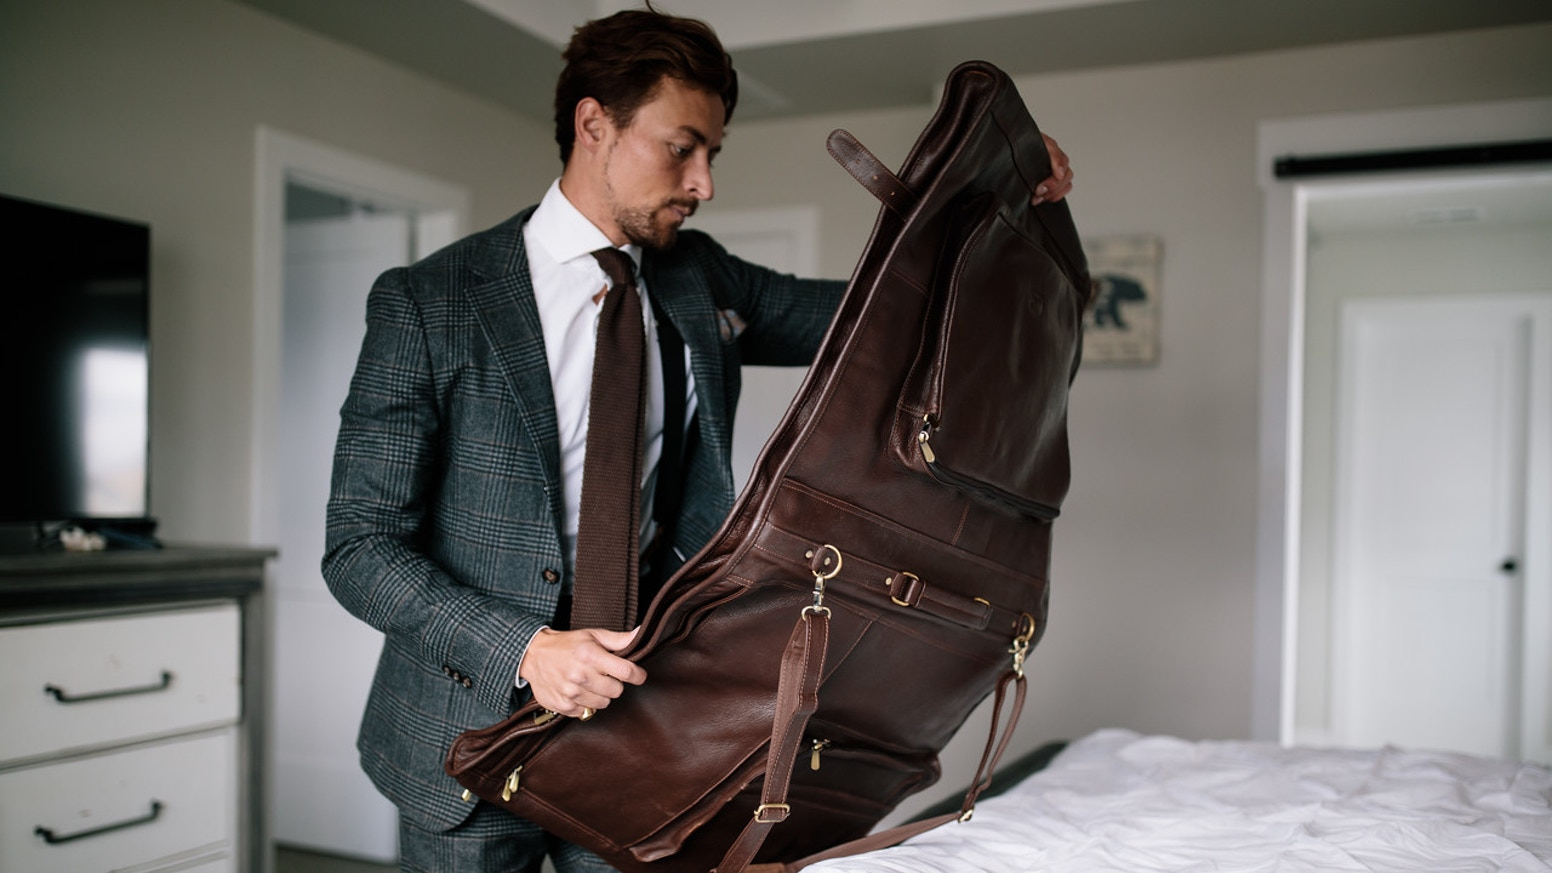 An heirloom quality, full-grain leather garment bag you can pass down for generations.